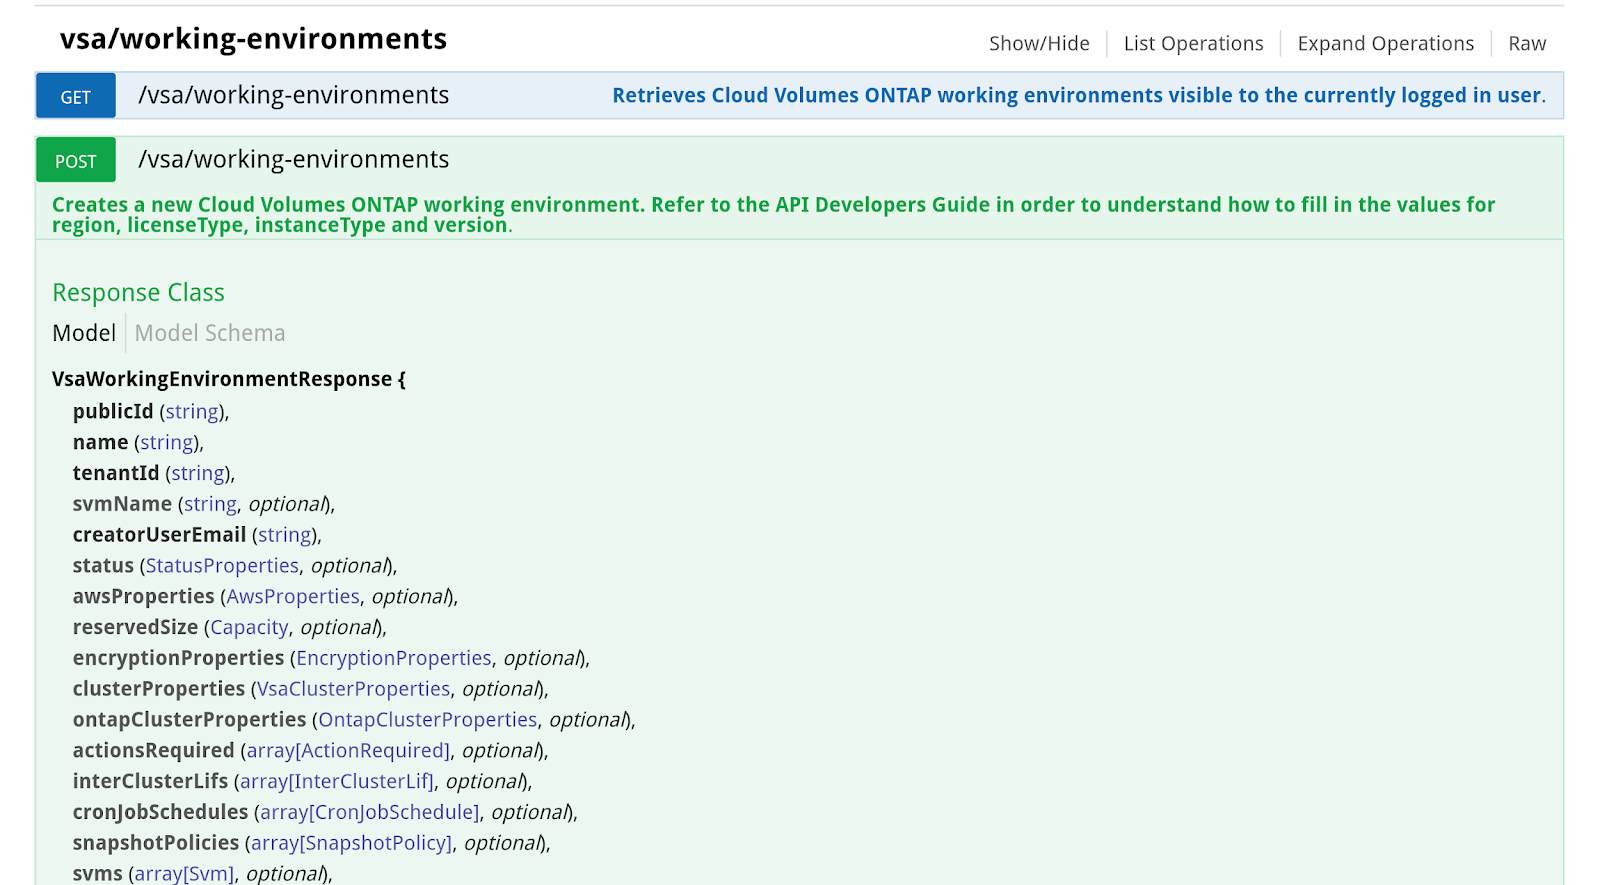 vsaworking-environments in cloud manager